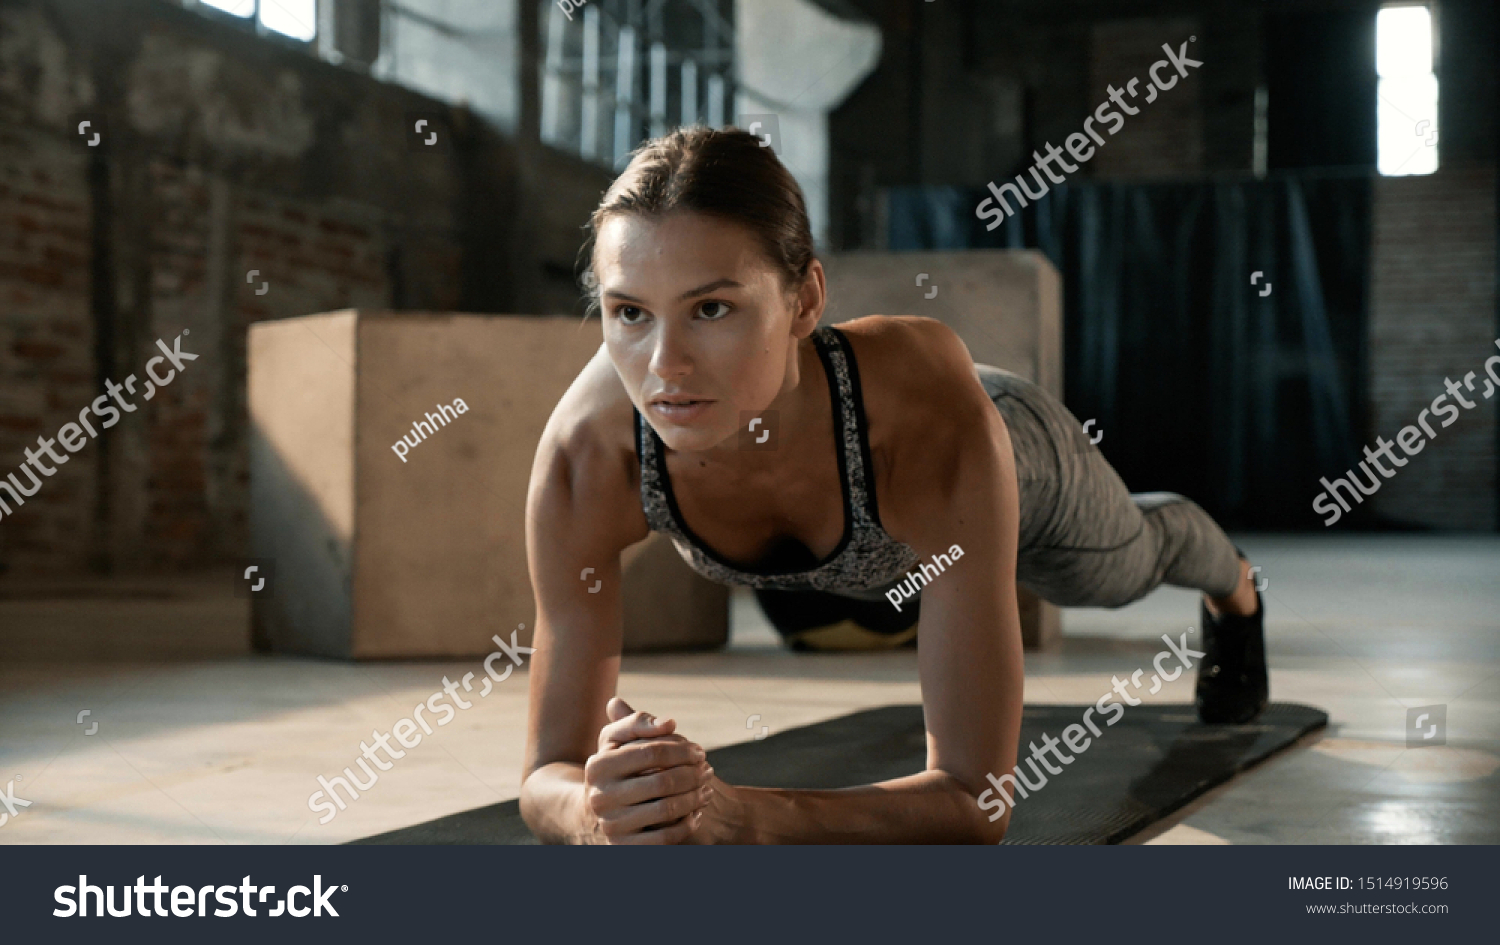 Fitness woman doing plank exercise workout in gym. Sport girl model in sportswear exercising on yoga mat, planking indoors #1514919596